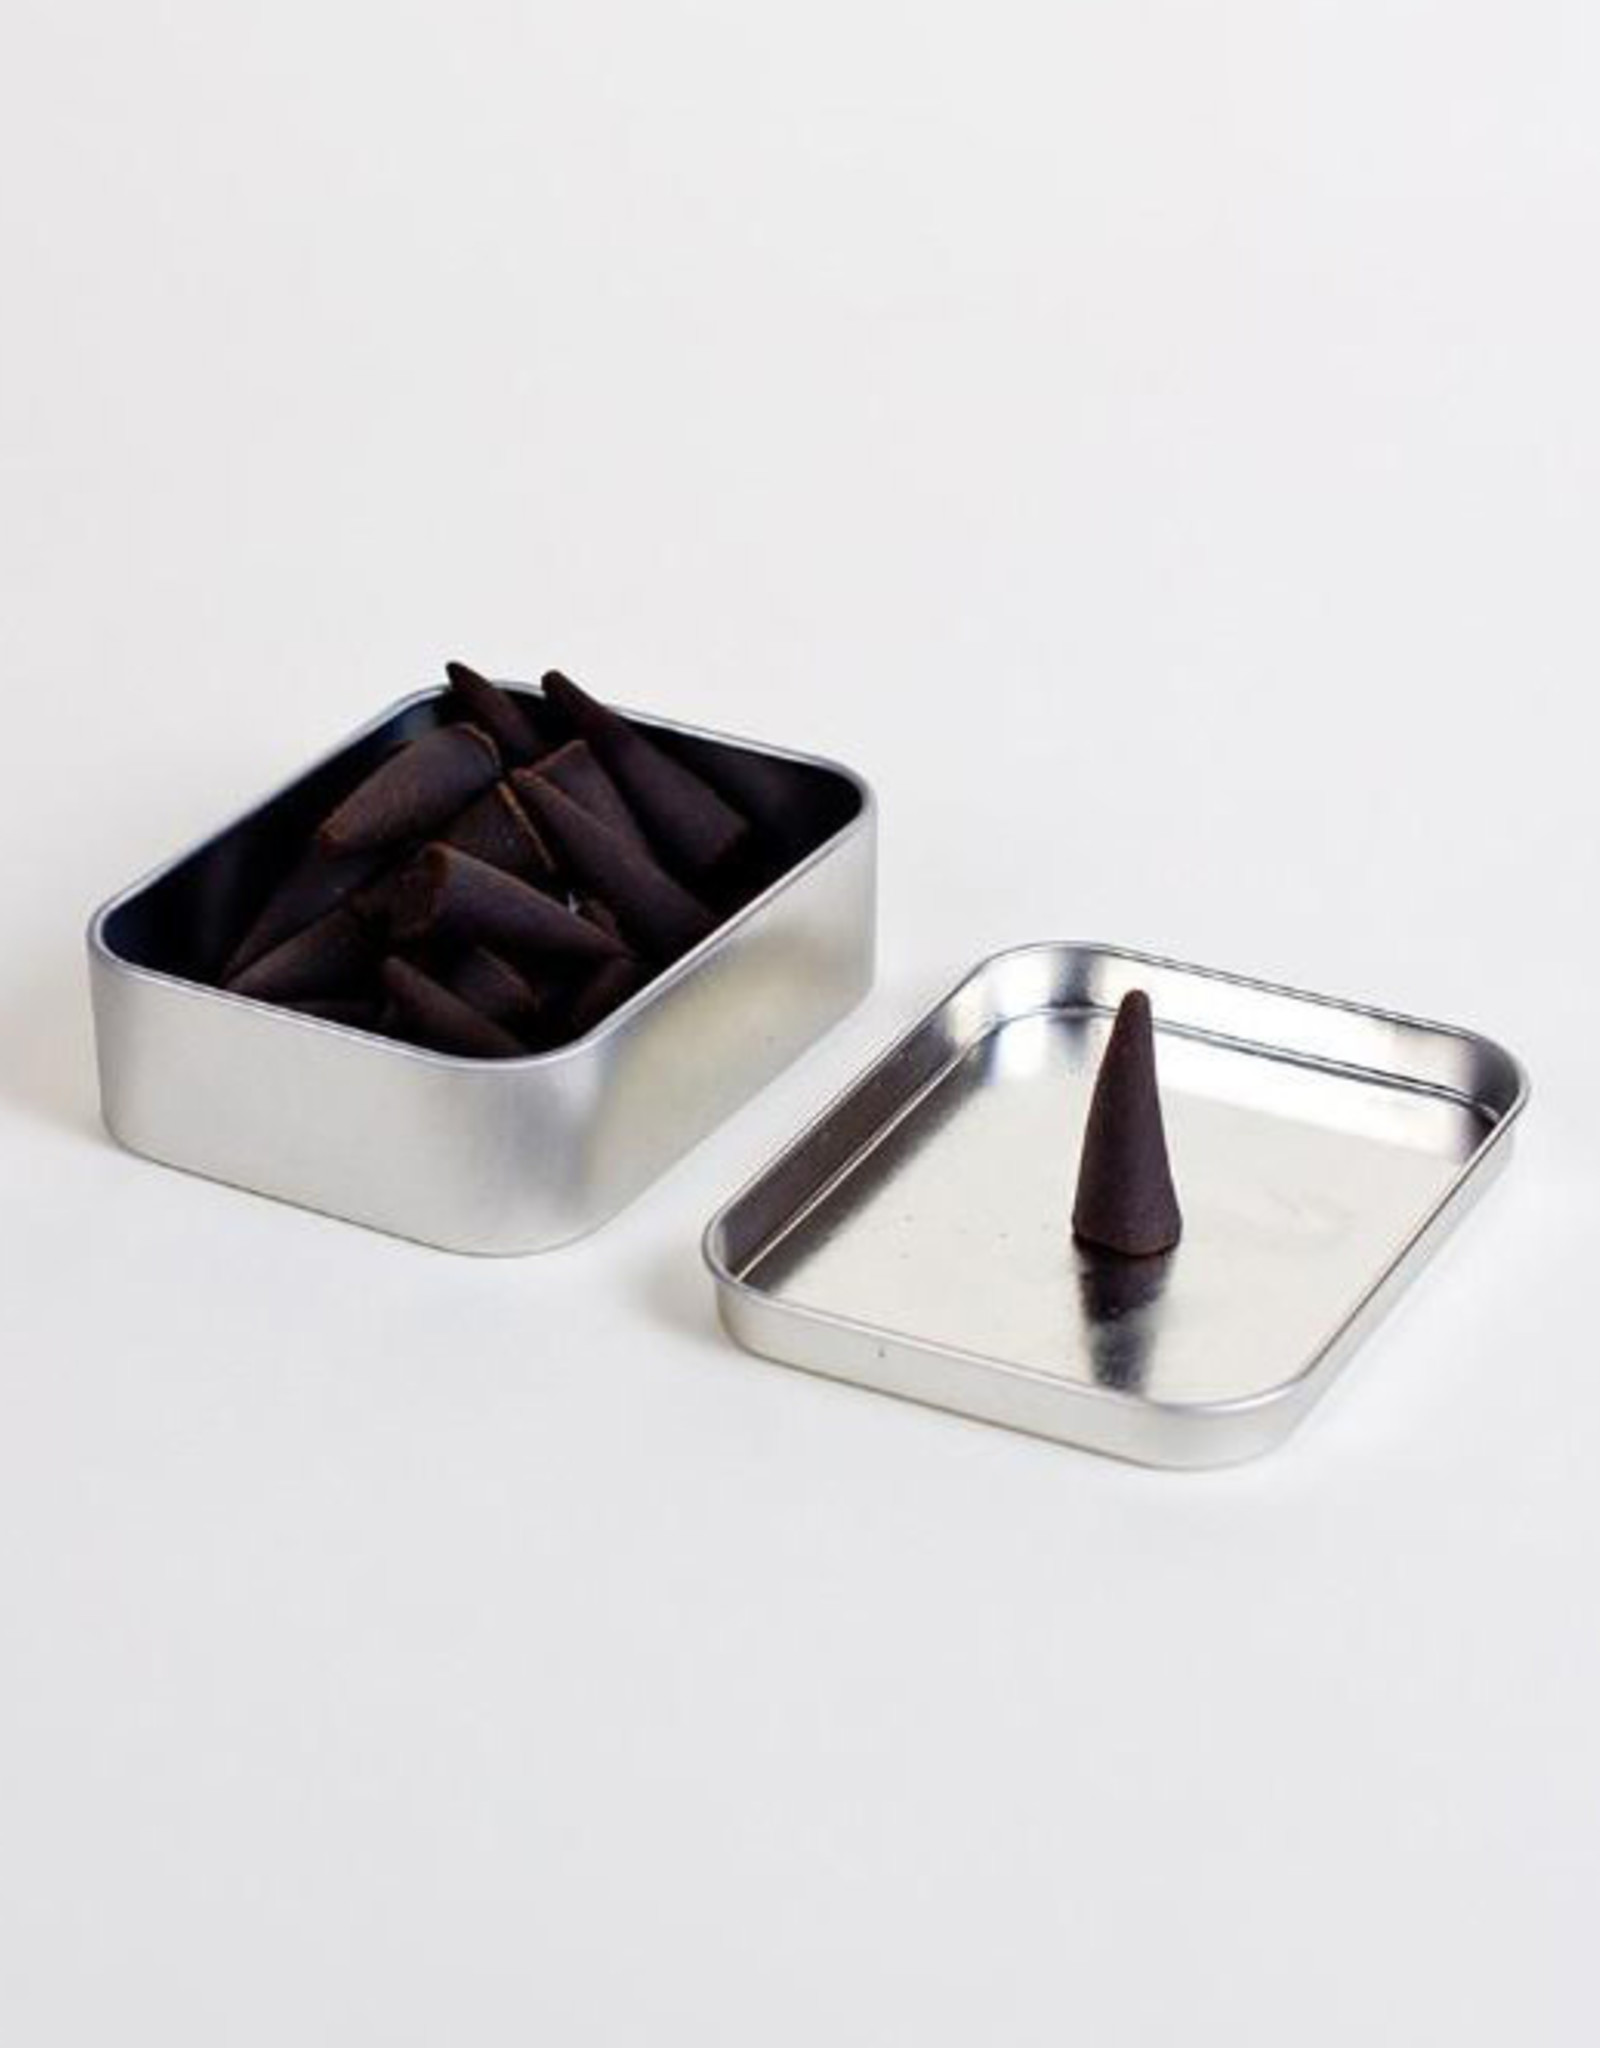 Good and Well Supply Company Theodore Roosevelt Incense Cones